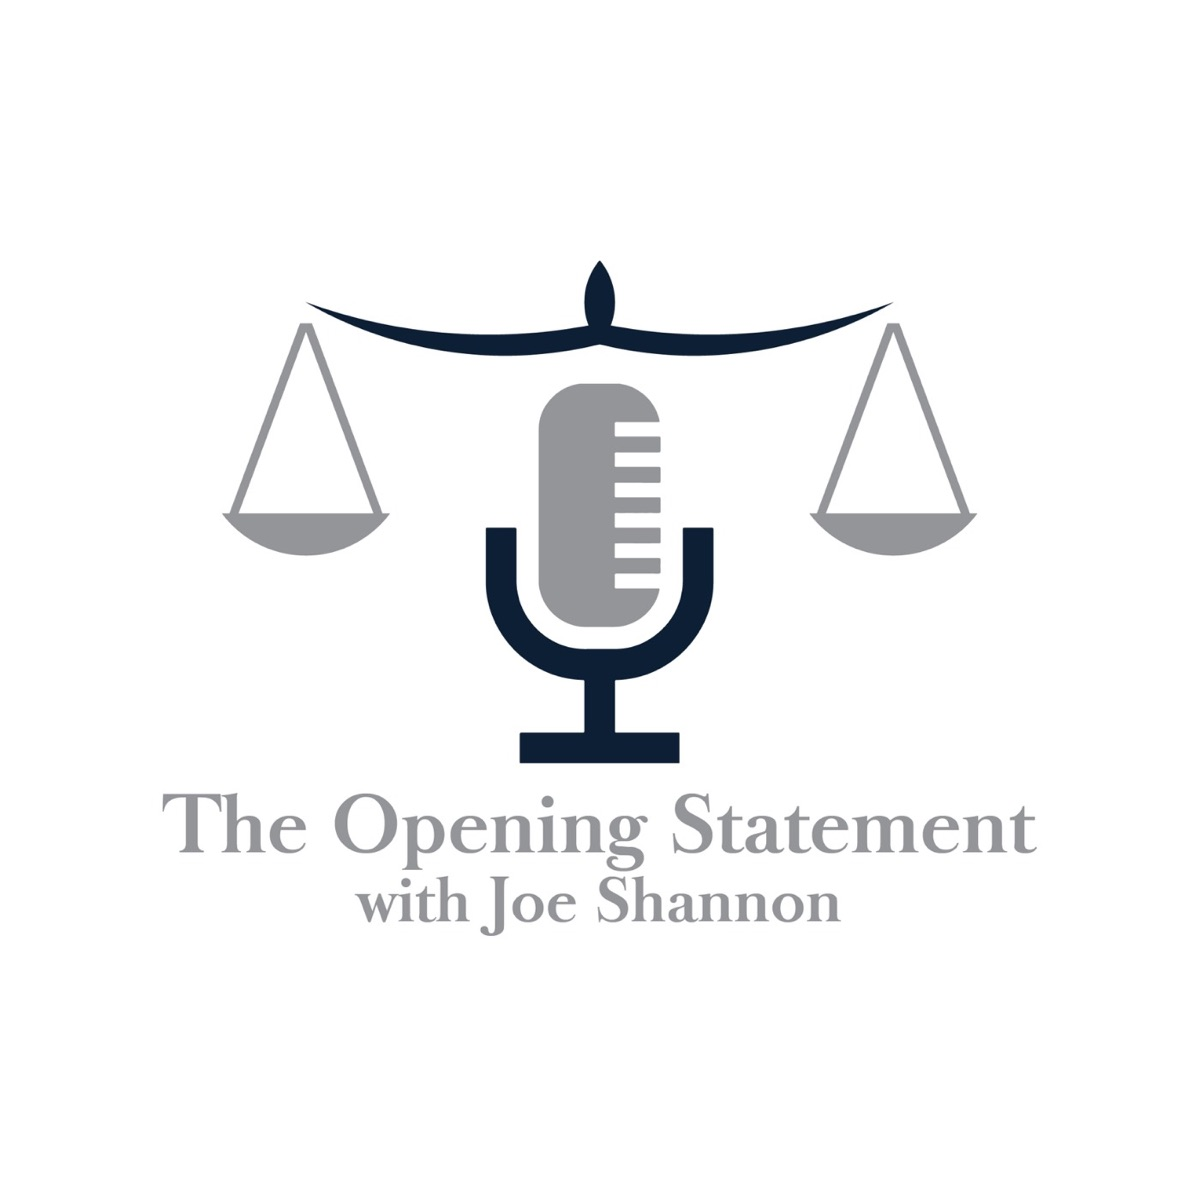 The Opening Statement with Joe Shannon